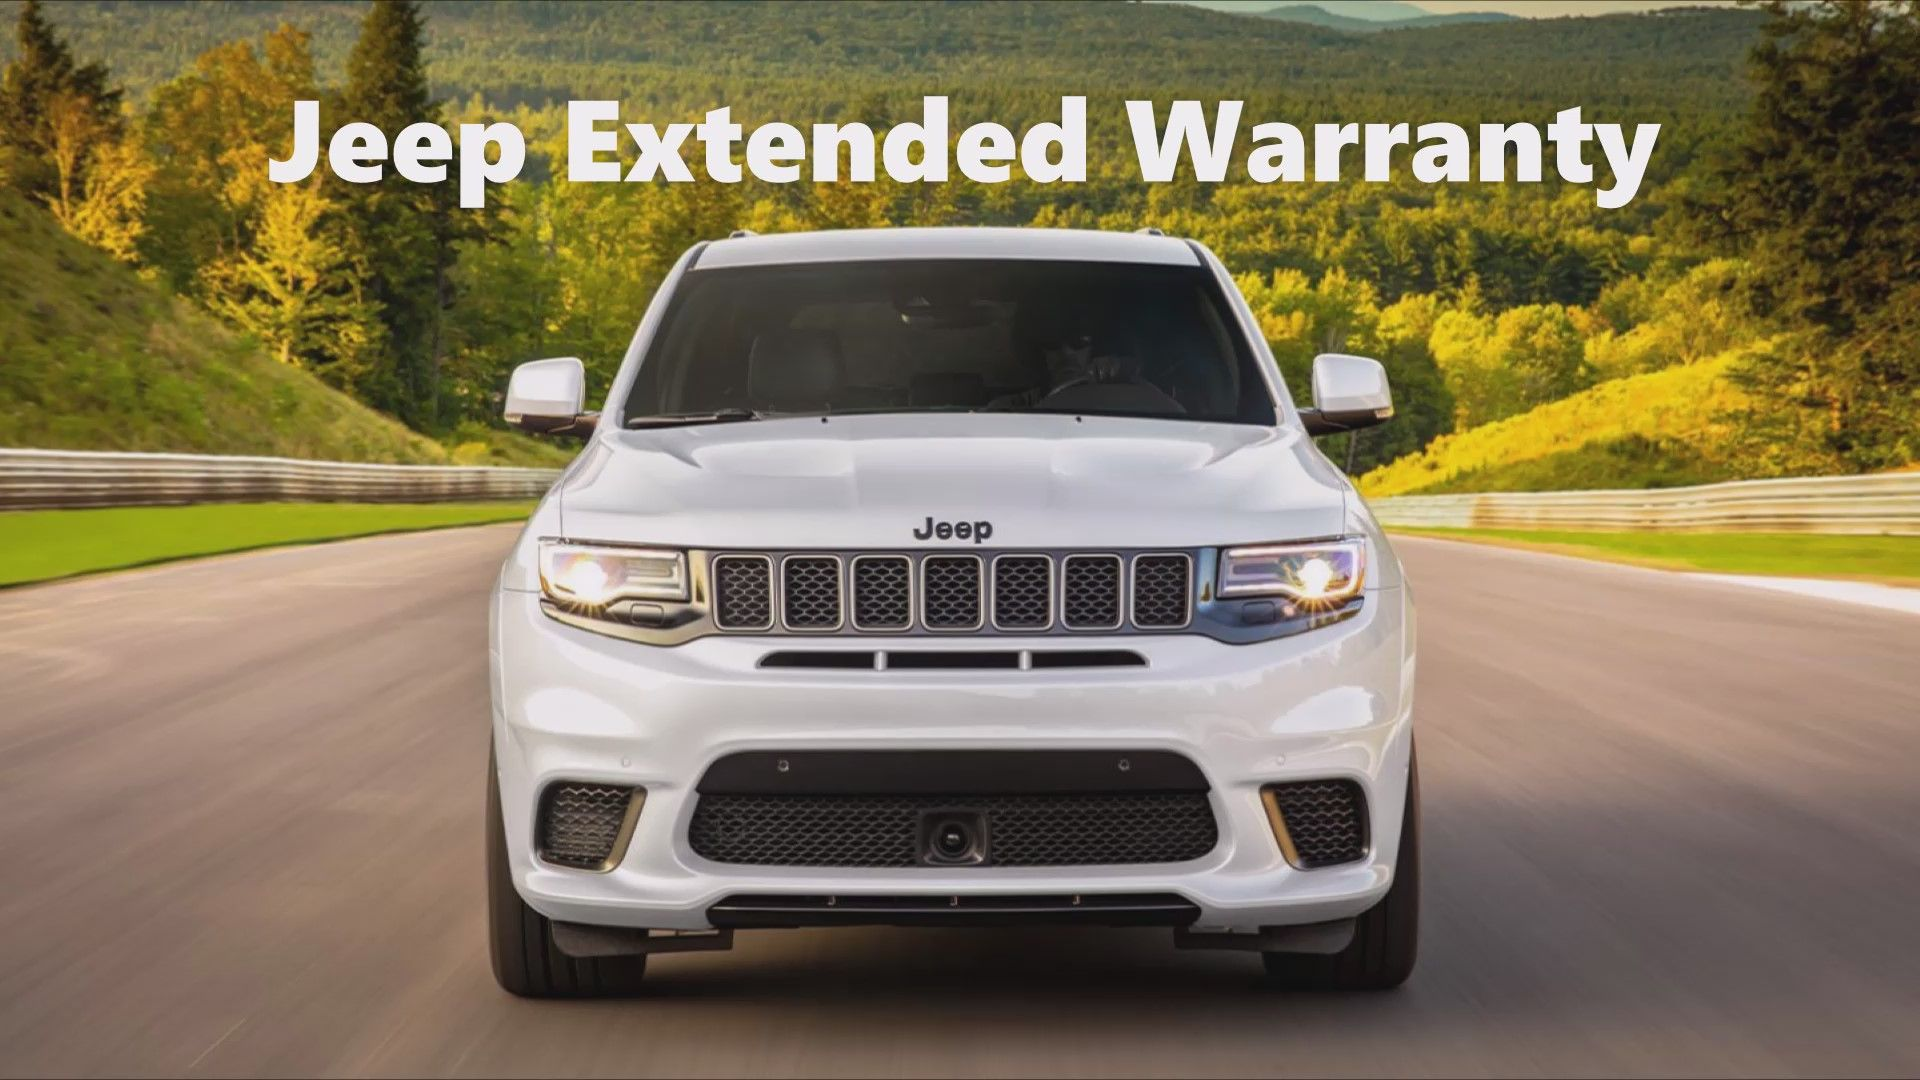 Grand Cherokee Warranty Warranties By Mopar In 2020 Jeep Jeep